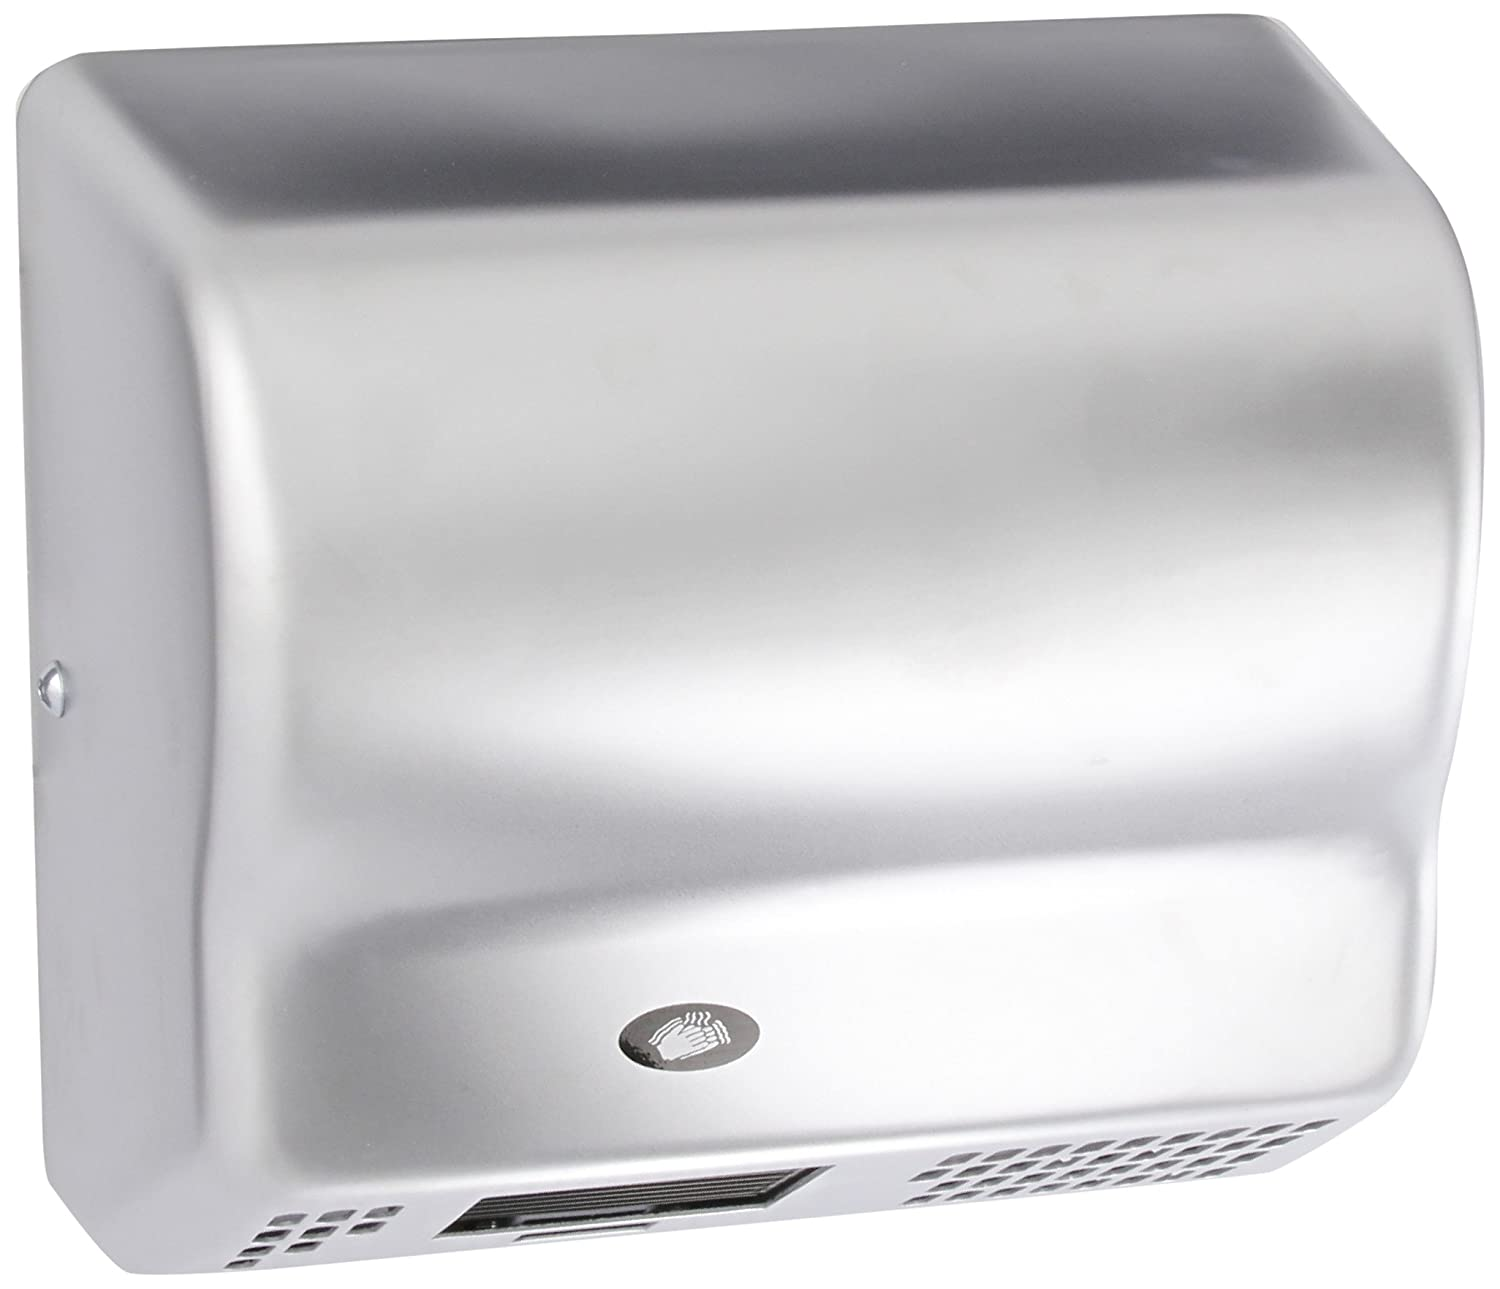 American Dryer Global GX3-C Steel Cover Automatic Hand Dryer, 208-240V, 1,500W Power, 50/60Hz, Satin Chrome Finish Inc. 85a